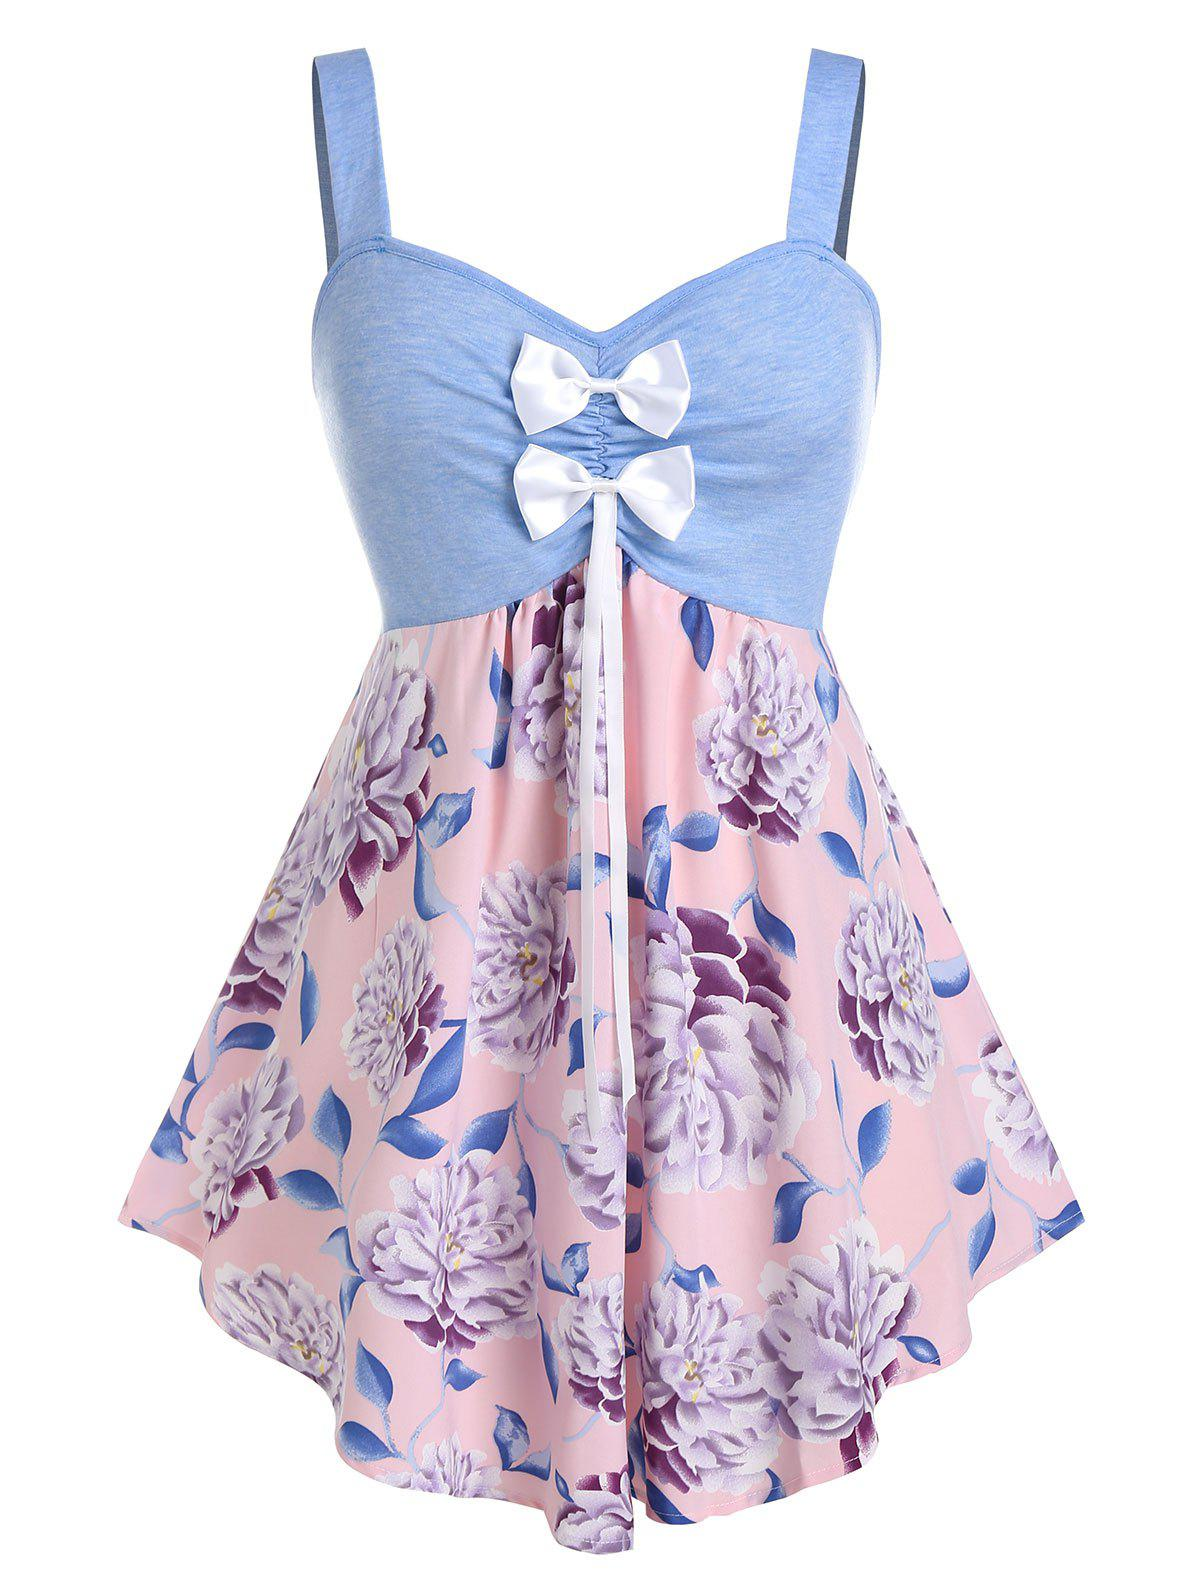 Plus Size Bowknot Flower Print Backless Tunic Tank Top - CRYSTAL BLUE 5X